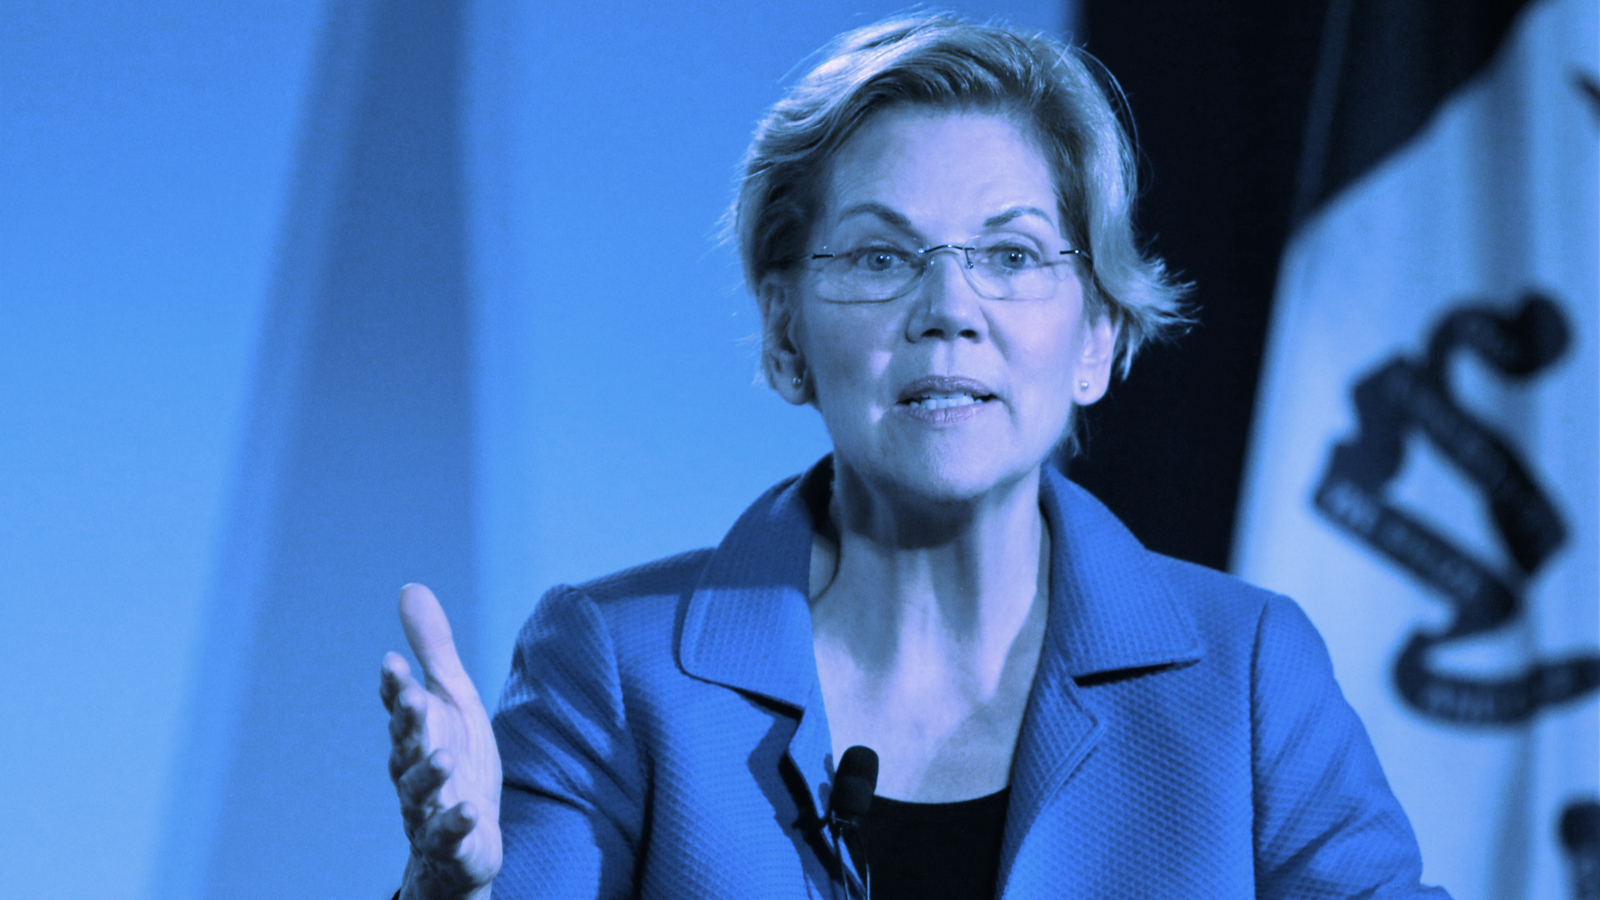 What Exactly Does Elizabeth Warren Want the SEC to Do About Crypto Exchanges?